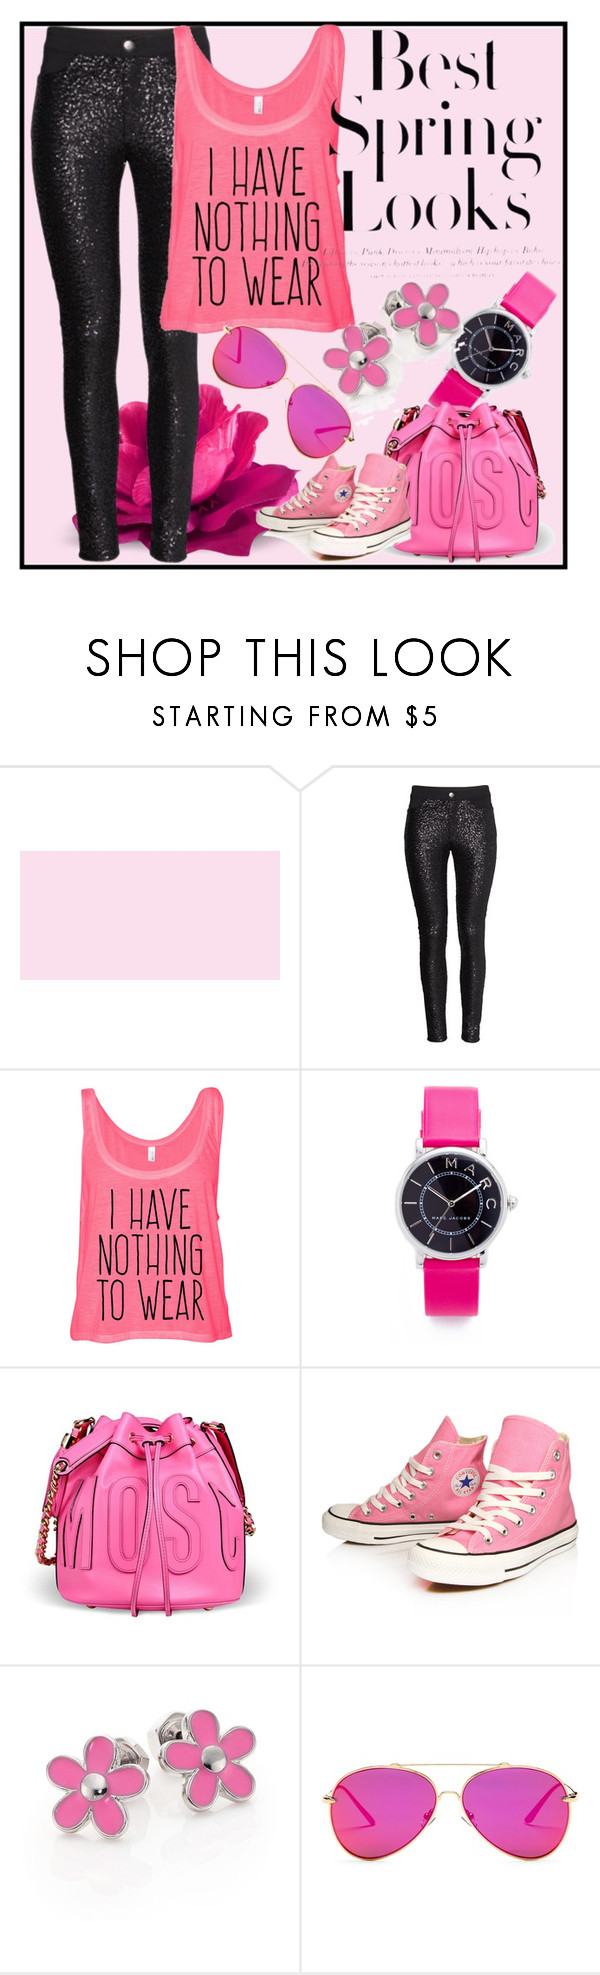 """""""Untitled #7"""" by merima-mrahorovic ❤ liked on Polyvore featuring Marc Jacobs, Moschino, Converse, H&M, Marc by Marc Jacobs and AQS by Aquaswiss"""